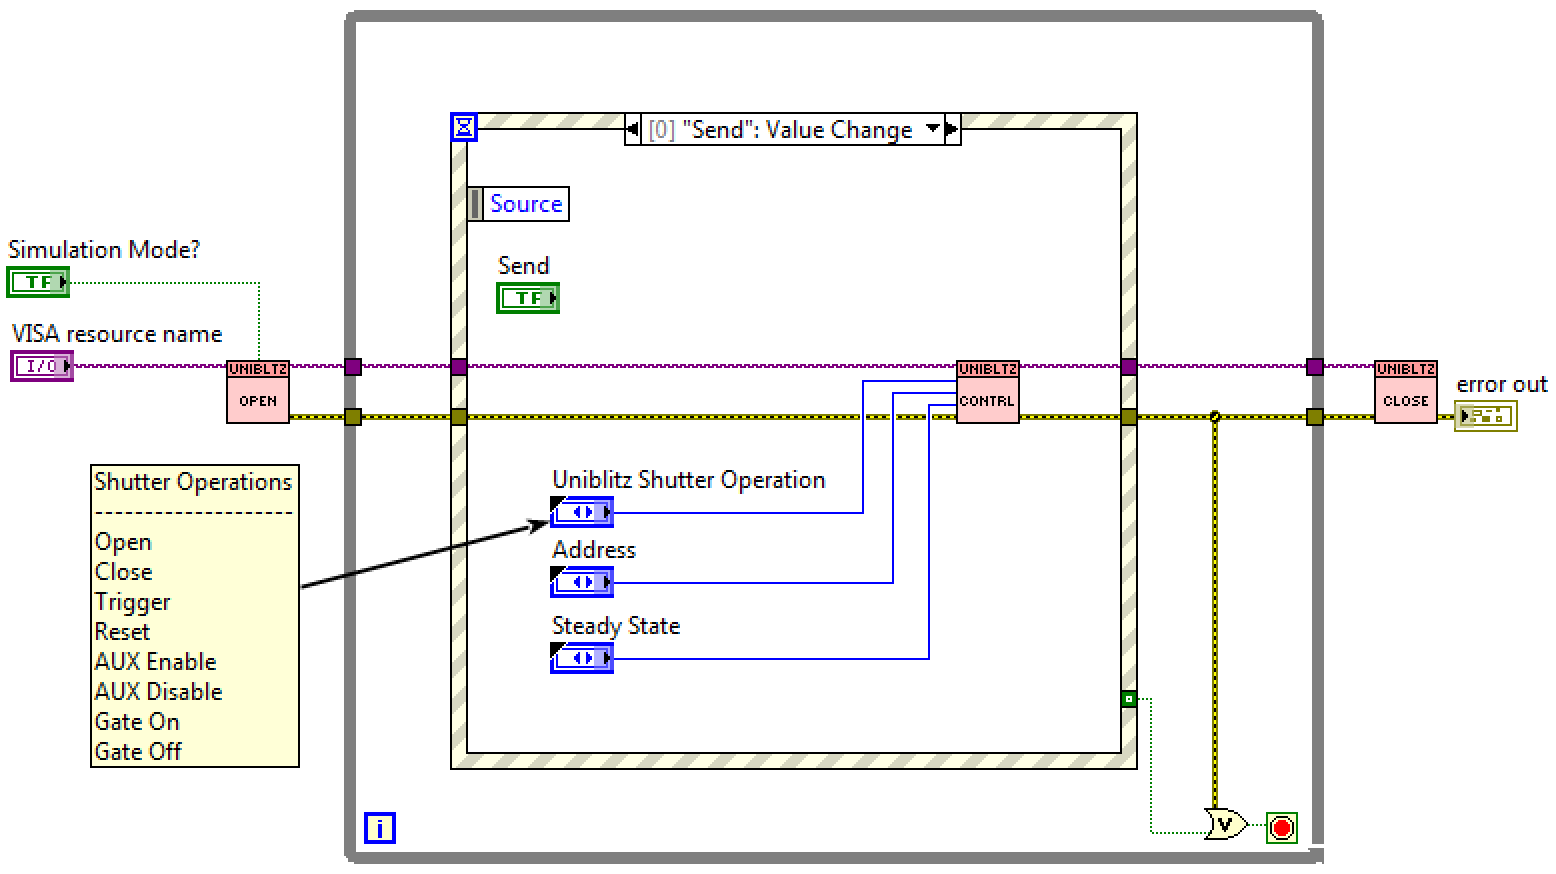 Sixclear LabVIEW Training & Consulting